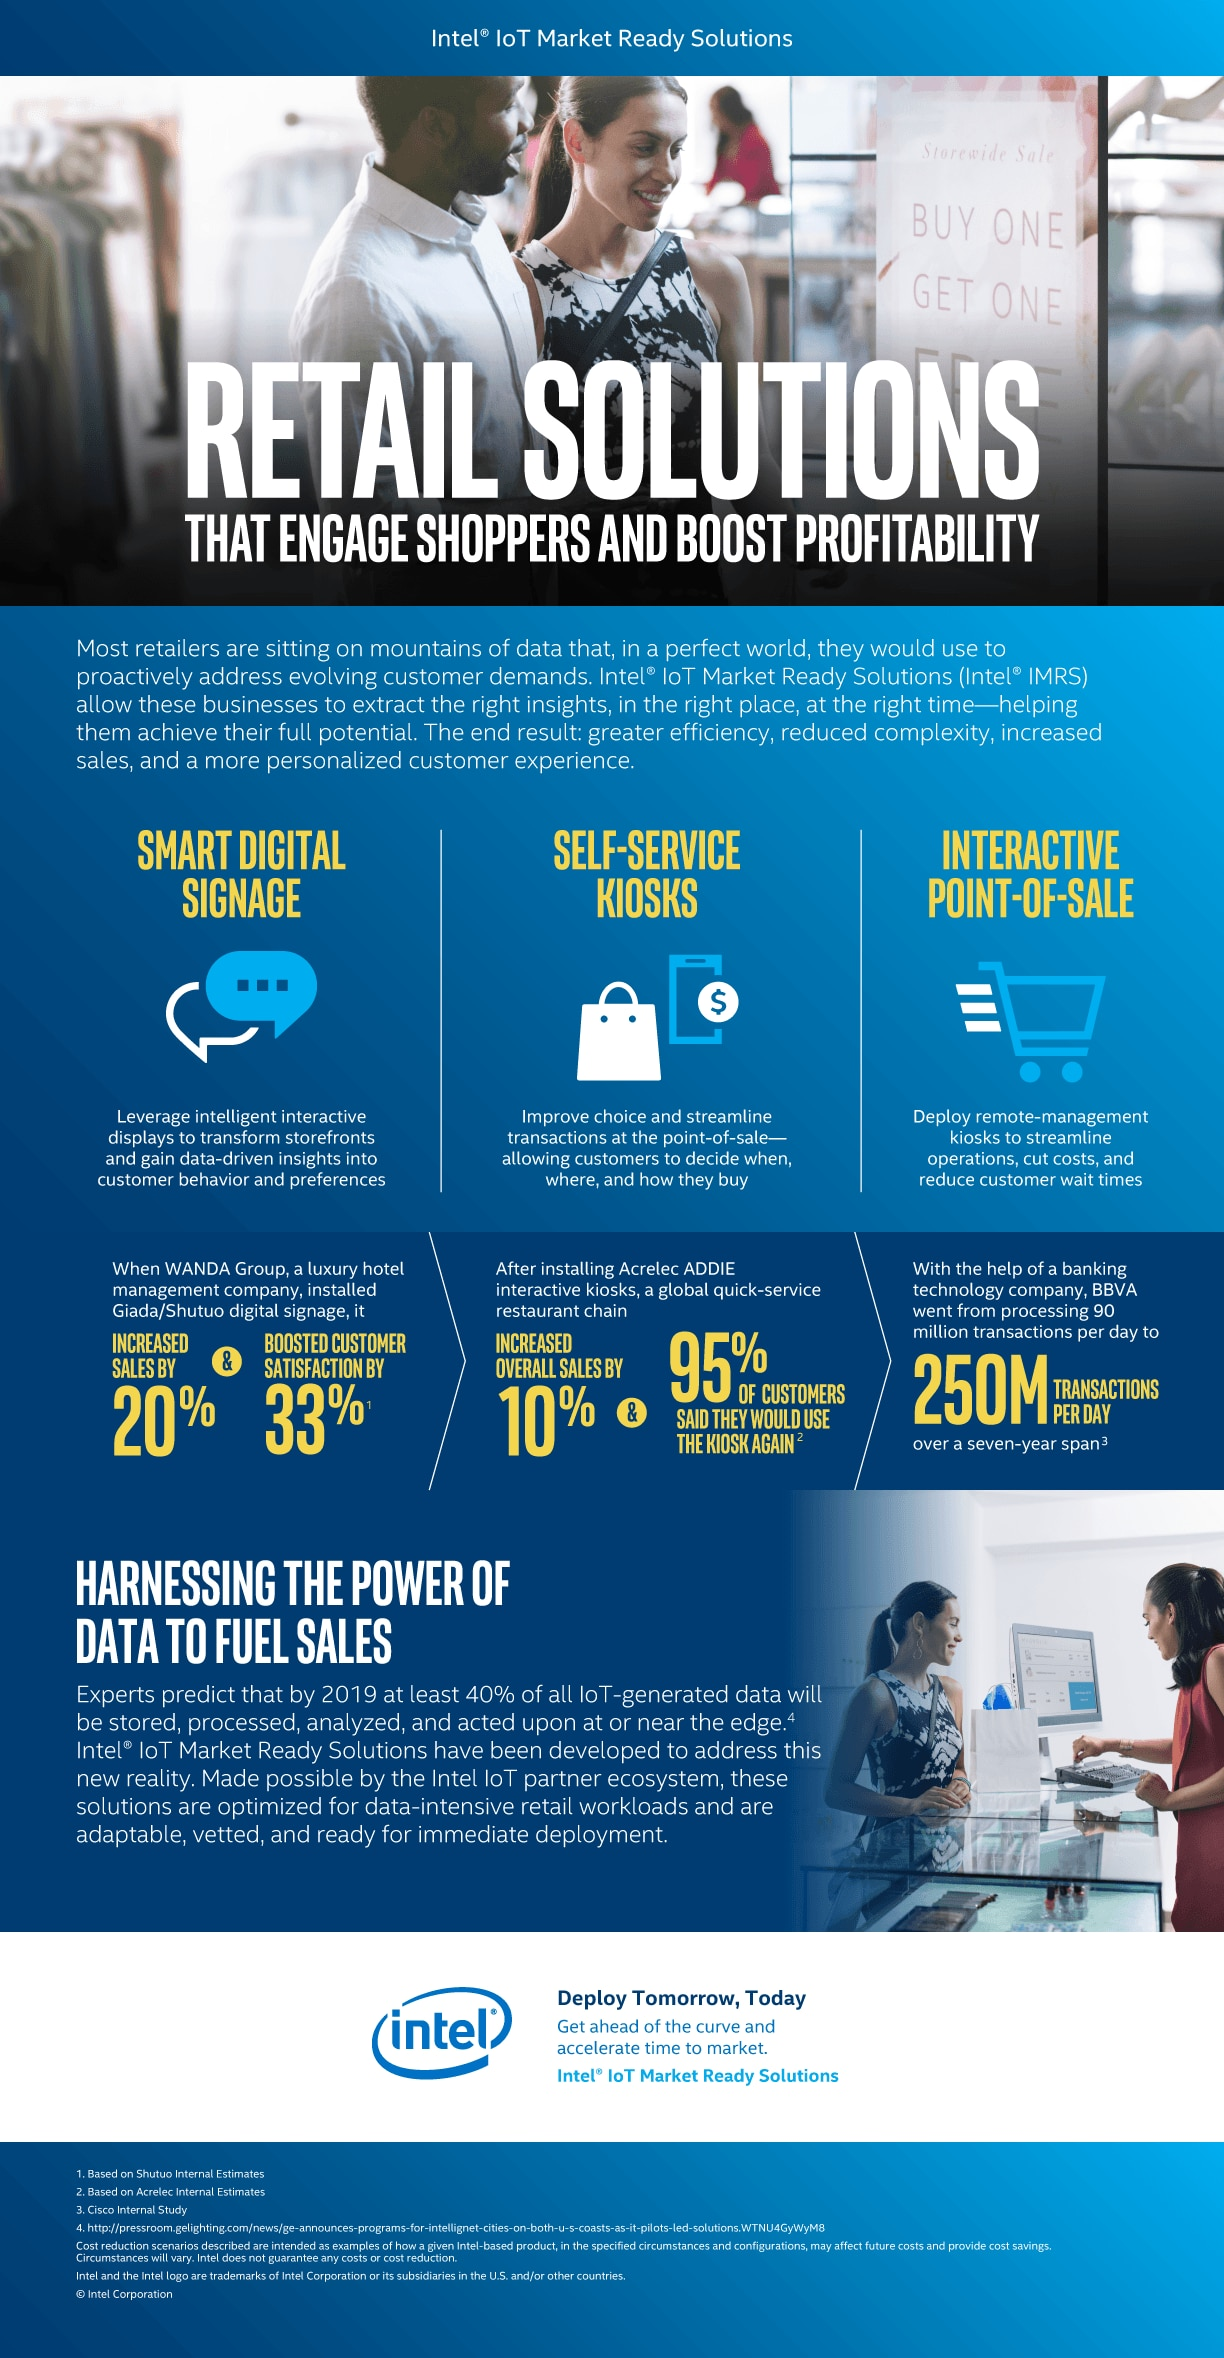 Intel® IoT Market Ready Solutions (Intel® IMRS) - Retail